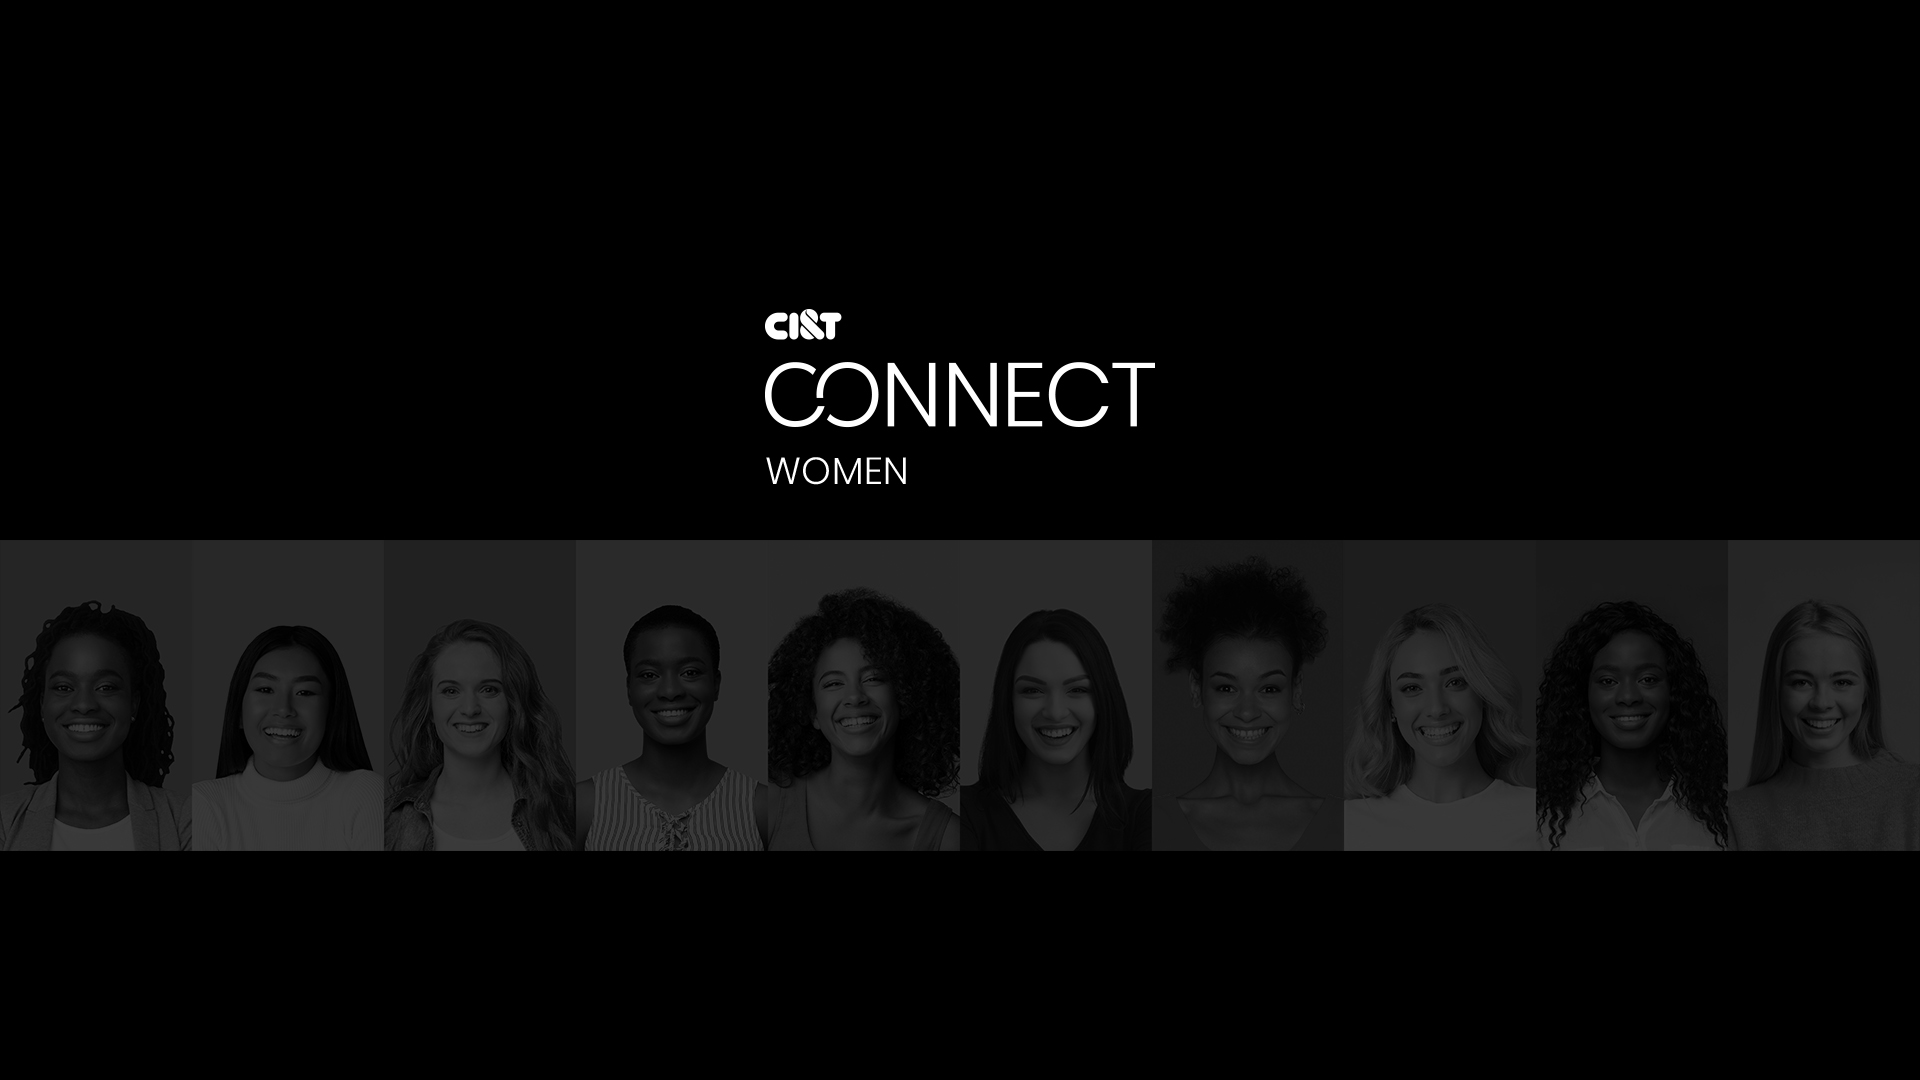 CI&T connect woman